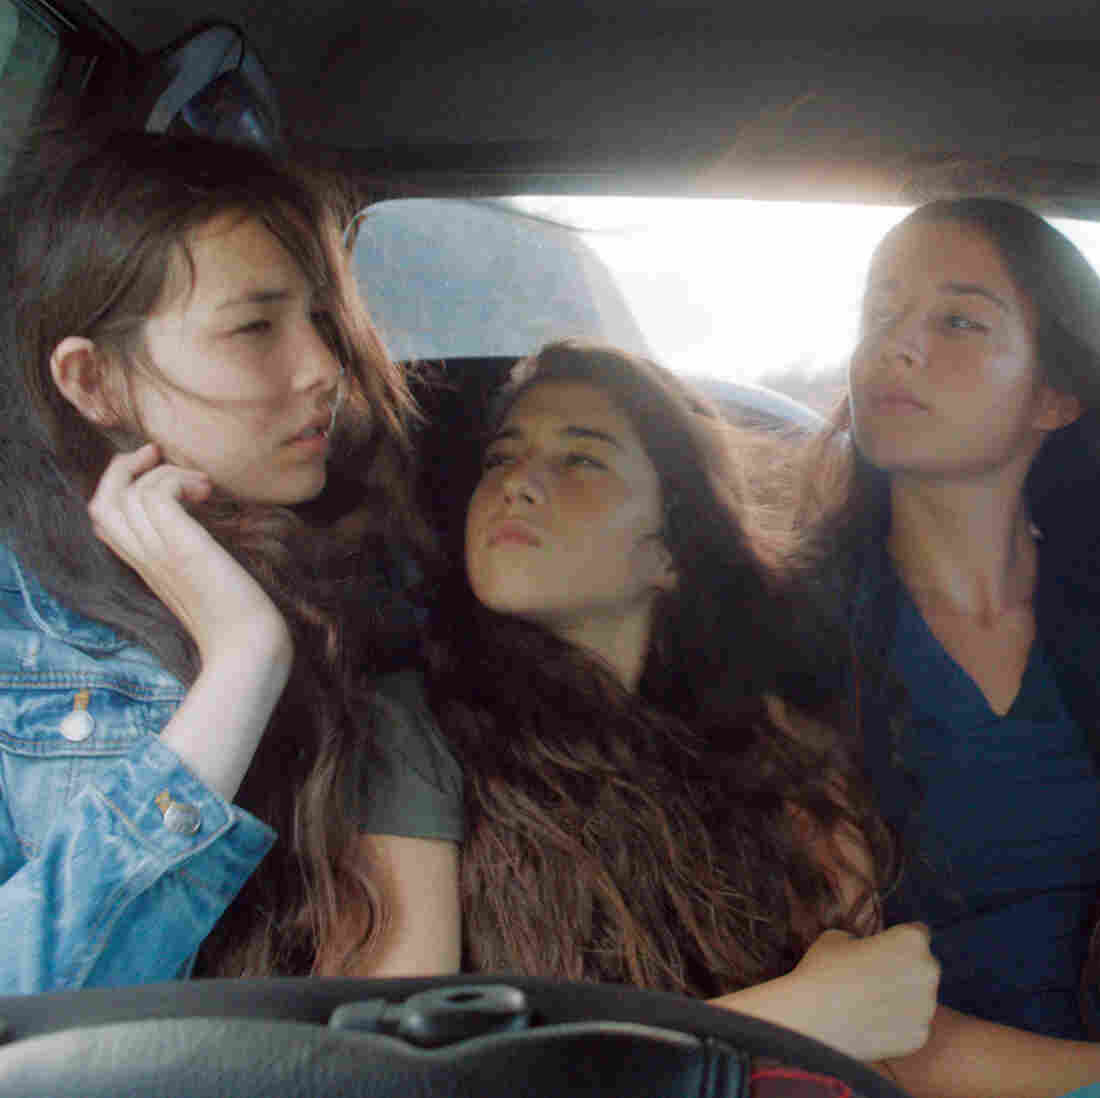 'Mustang' Takes On Women's Rights In Fairy Tale Form